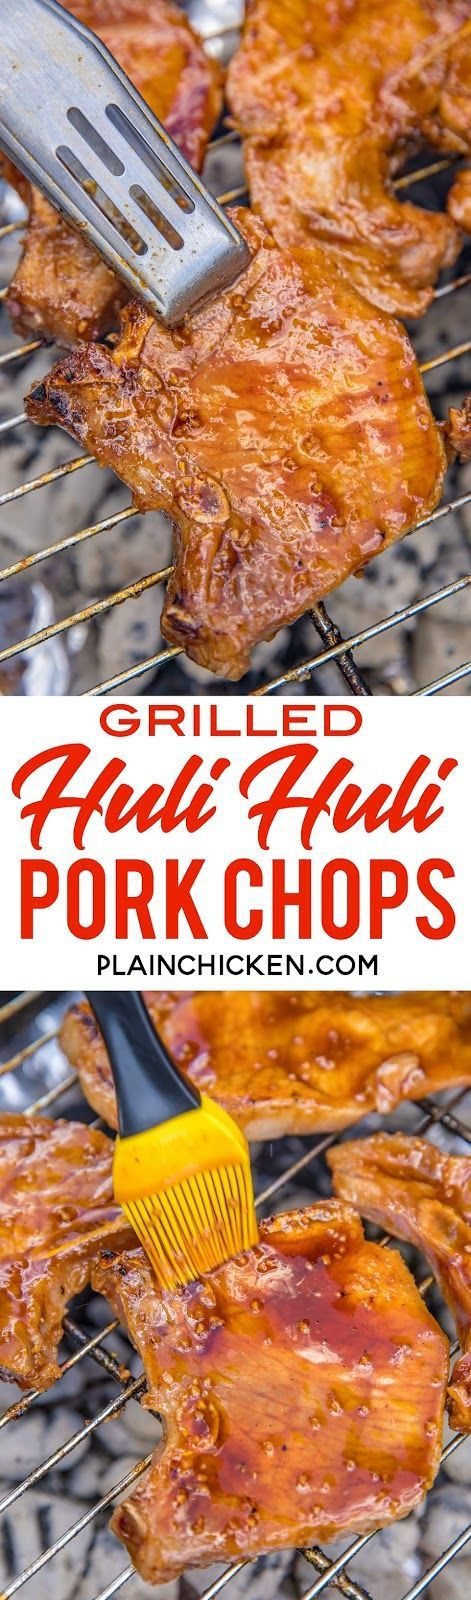 Grilled Huli Huli Pork Chops - pork chops marinated in a quick homemade ginger bbq sauce and grilled. Brown sugar, ketchup, ginger, soy sauce, garlic, sherry and pork chops. Can use boneless or bone-in pork chops. Save some of the marinade to baste pork chops when grilling. The whole family went back for seconds!! Grilled Huli Huli Pork Chops - pork chops marinated in a quick homemade ginger bbq sauce and grilled. Brown sugar, ketchup, gin